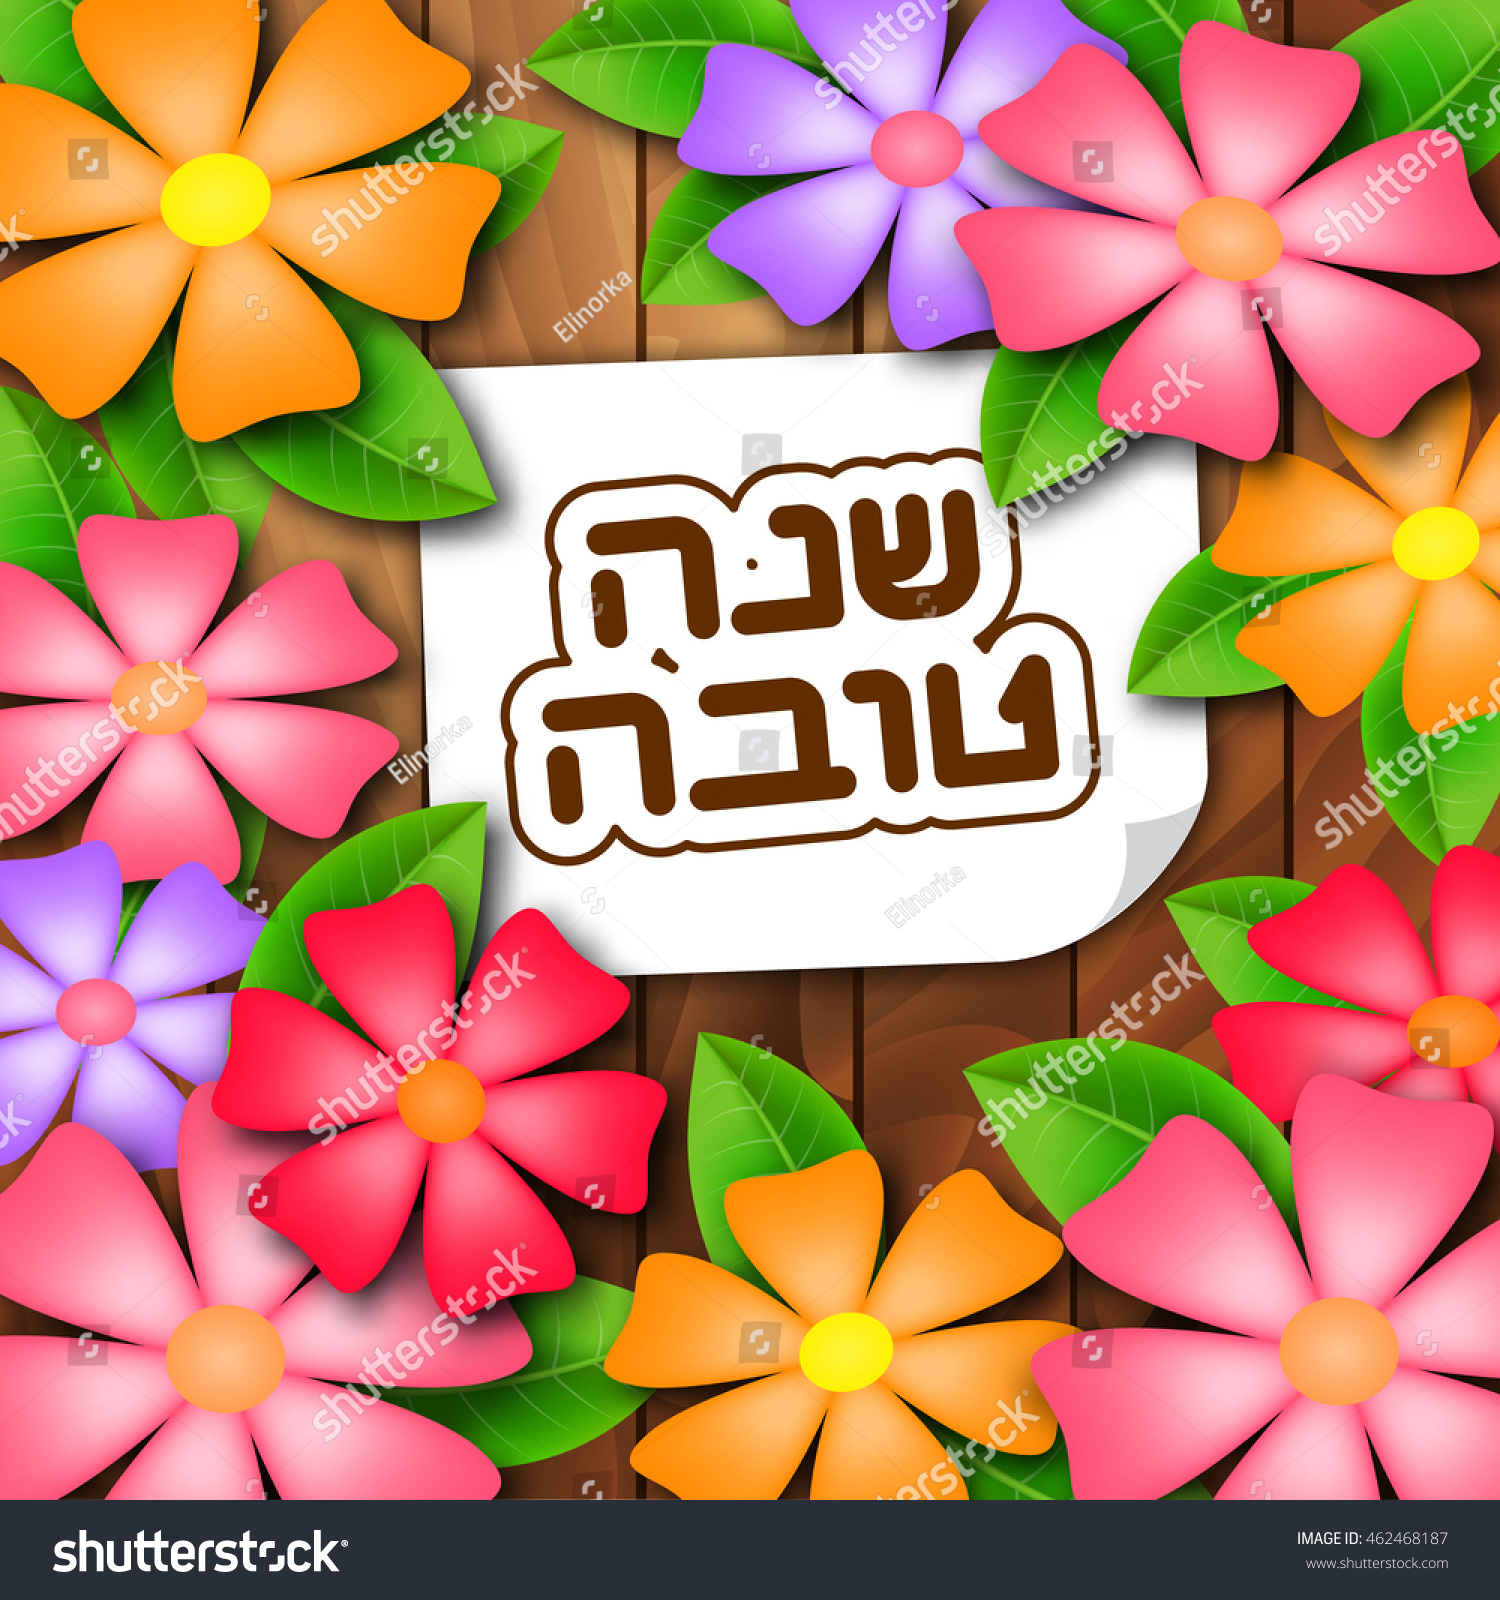 Rosh hashanah jewish new year greeting stock vector 462468187 rosh hashanah jewish new year greeting card hebrew text happy new year kristyandbryce Image collections